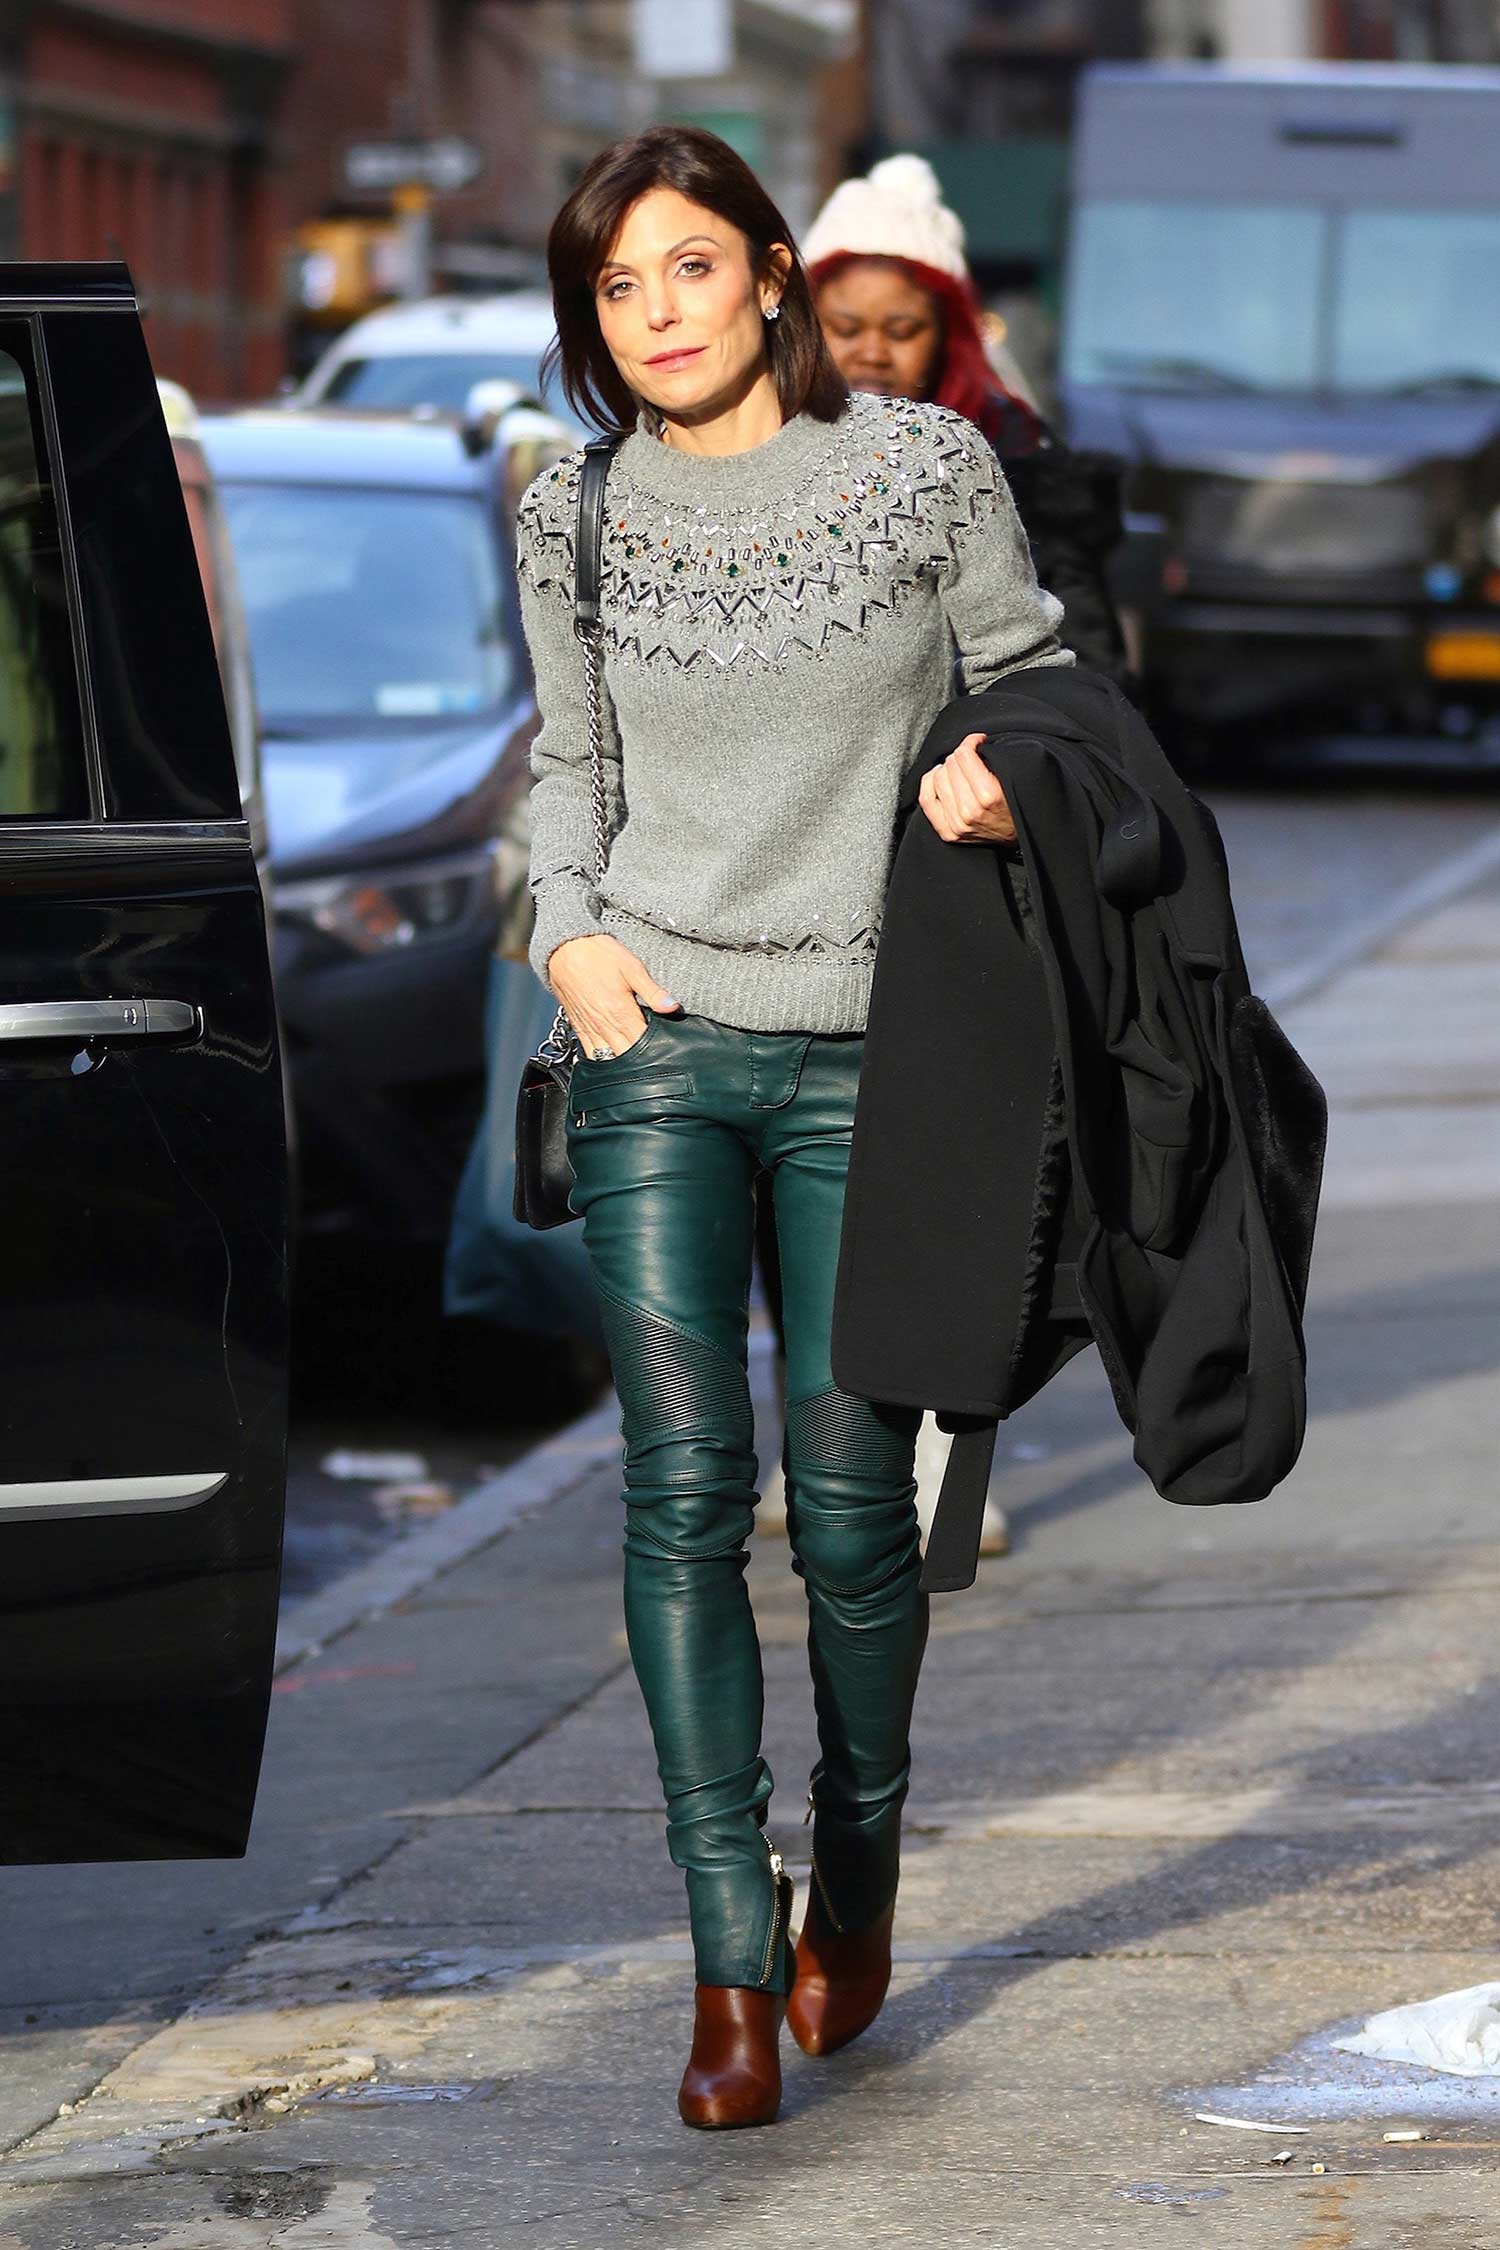 bethenny-frankel-balmain-green-emerald-leather-moto-biker-pants